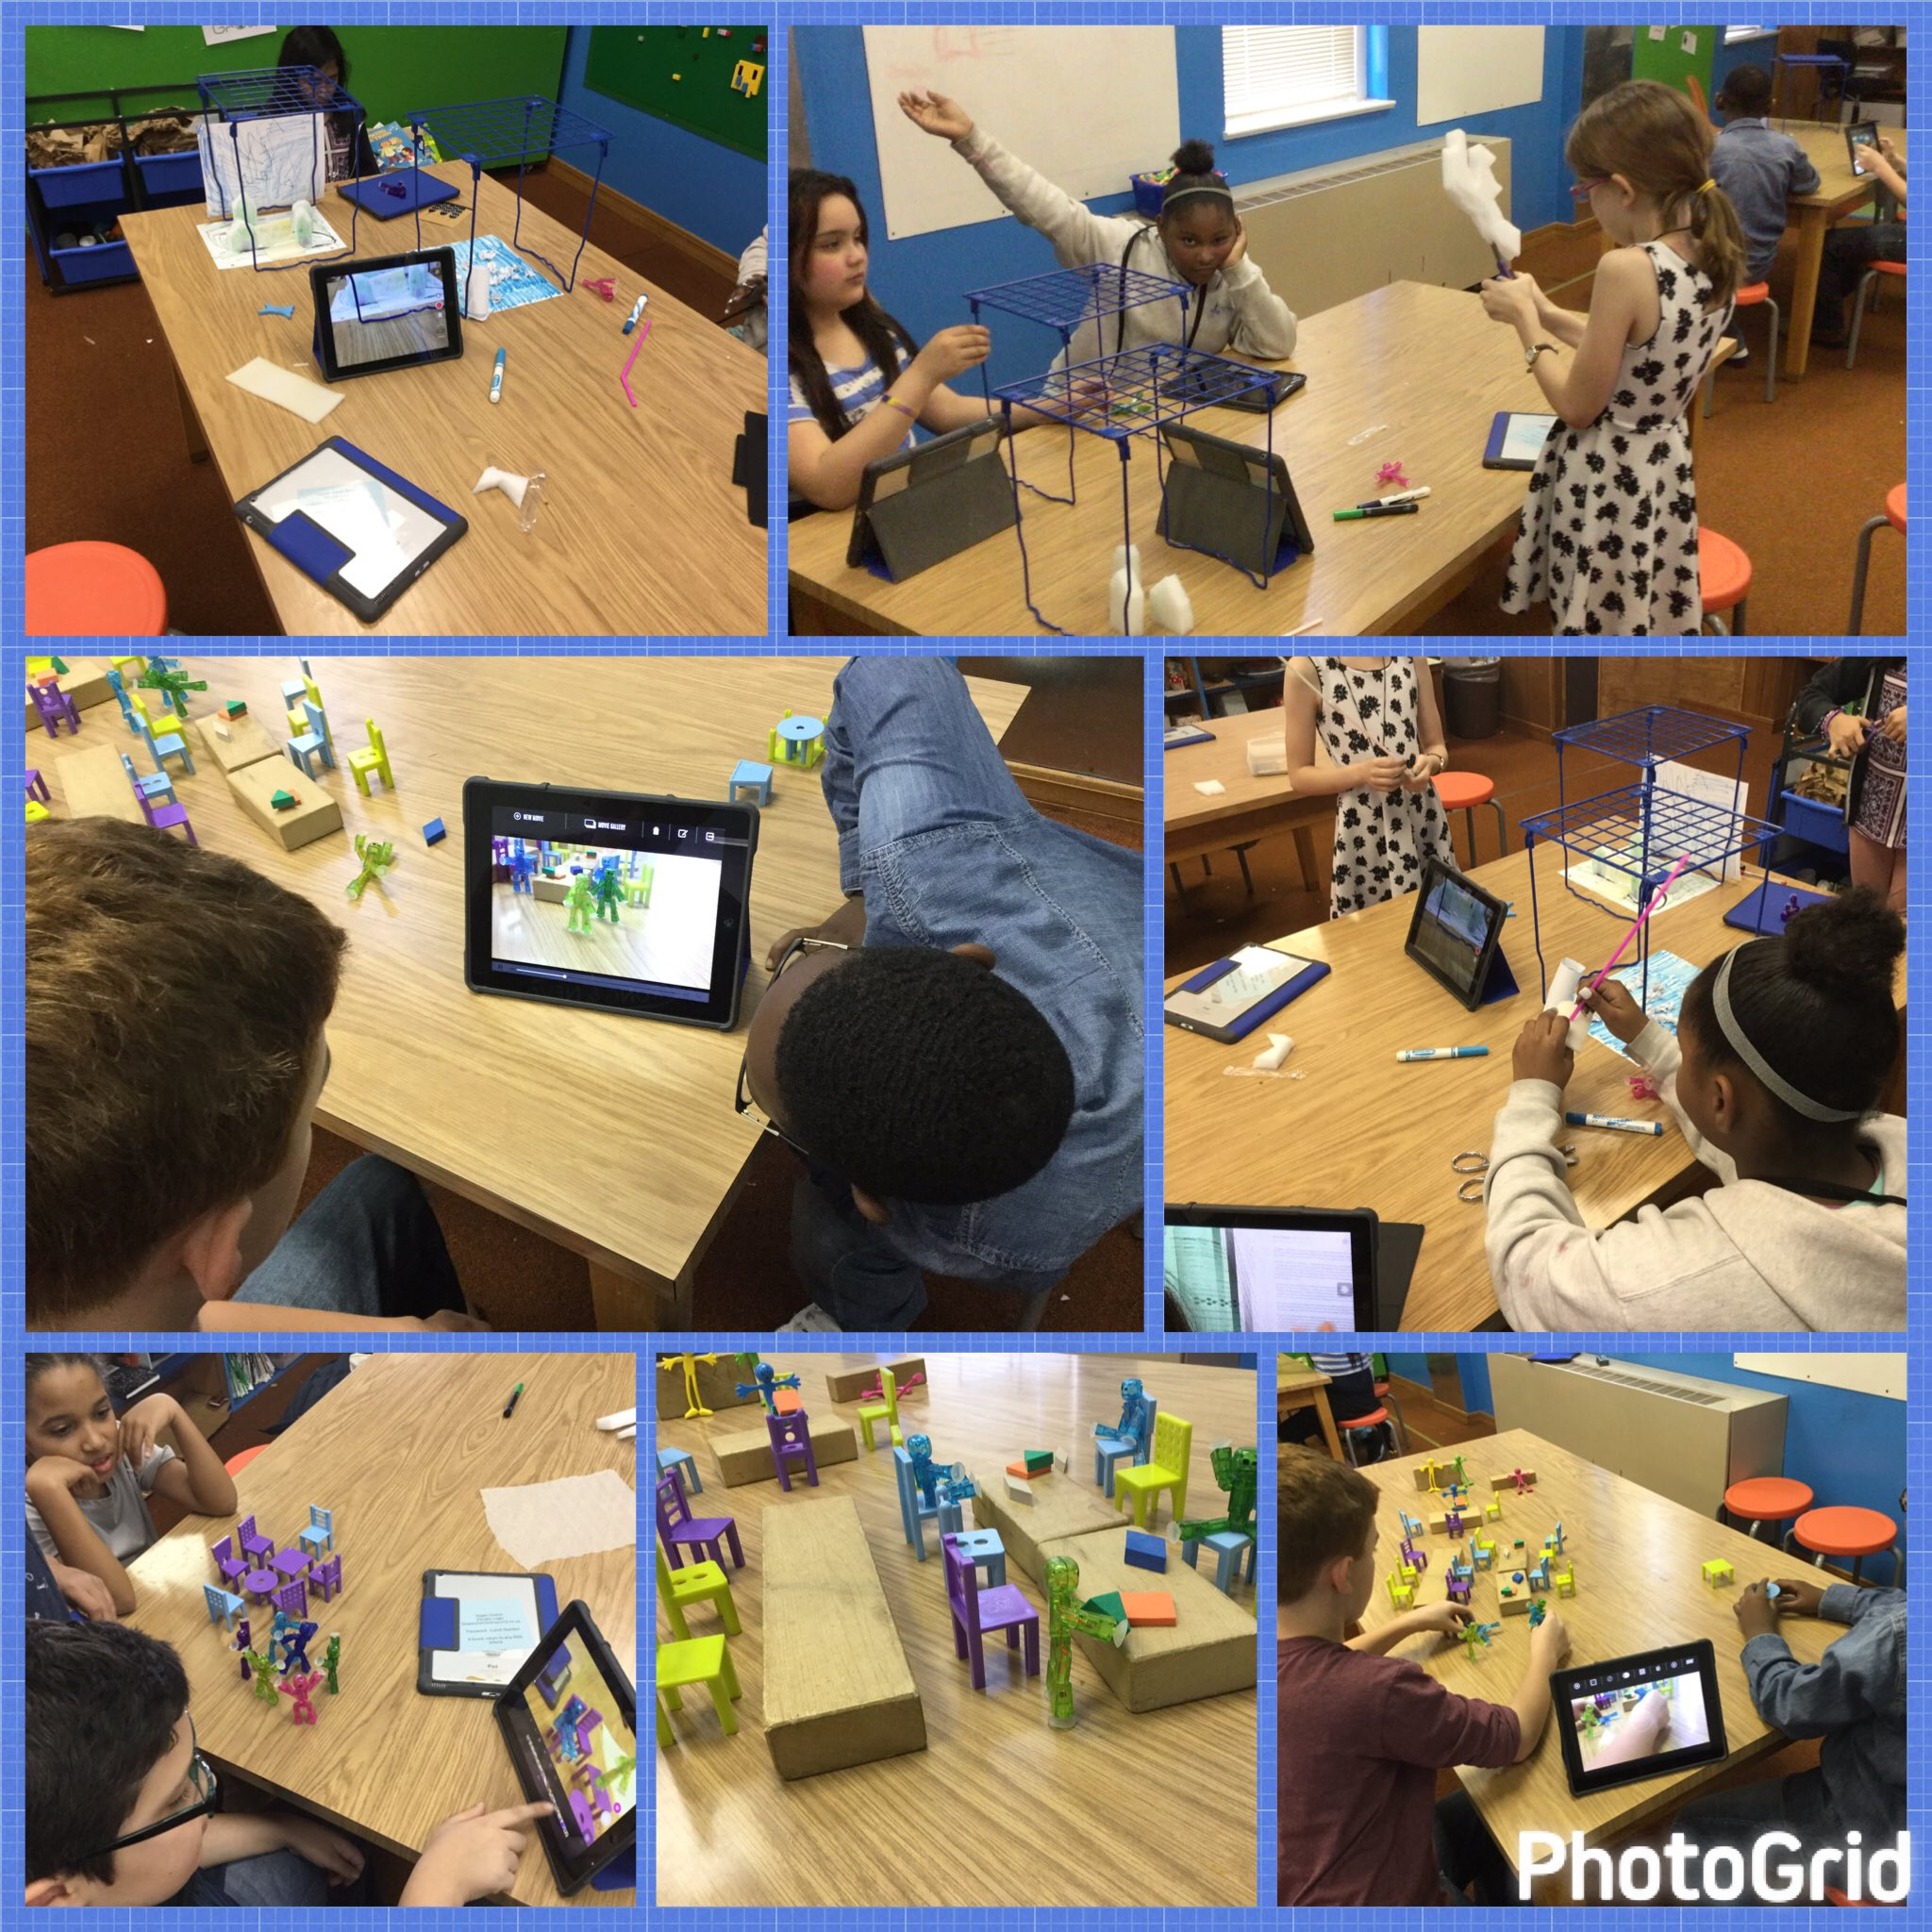 #cgesoars #DLDay in Makery #rssmedia #makered @OfficialDLDay #elemakers https://t.co/0B20I9n77U